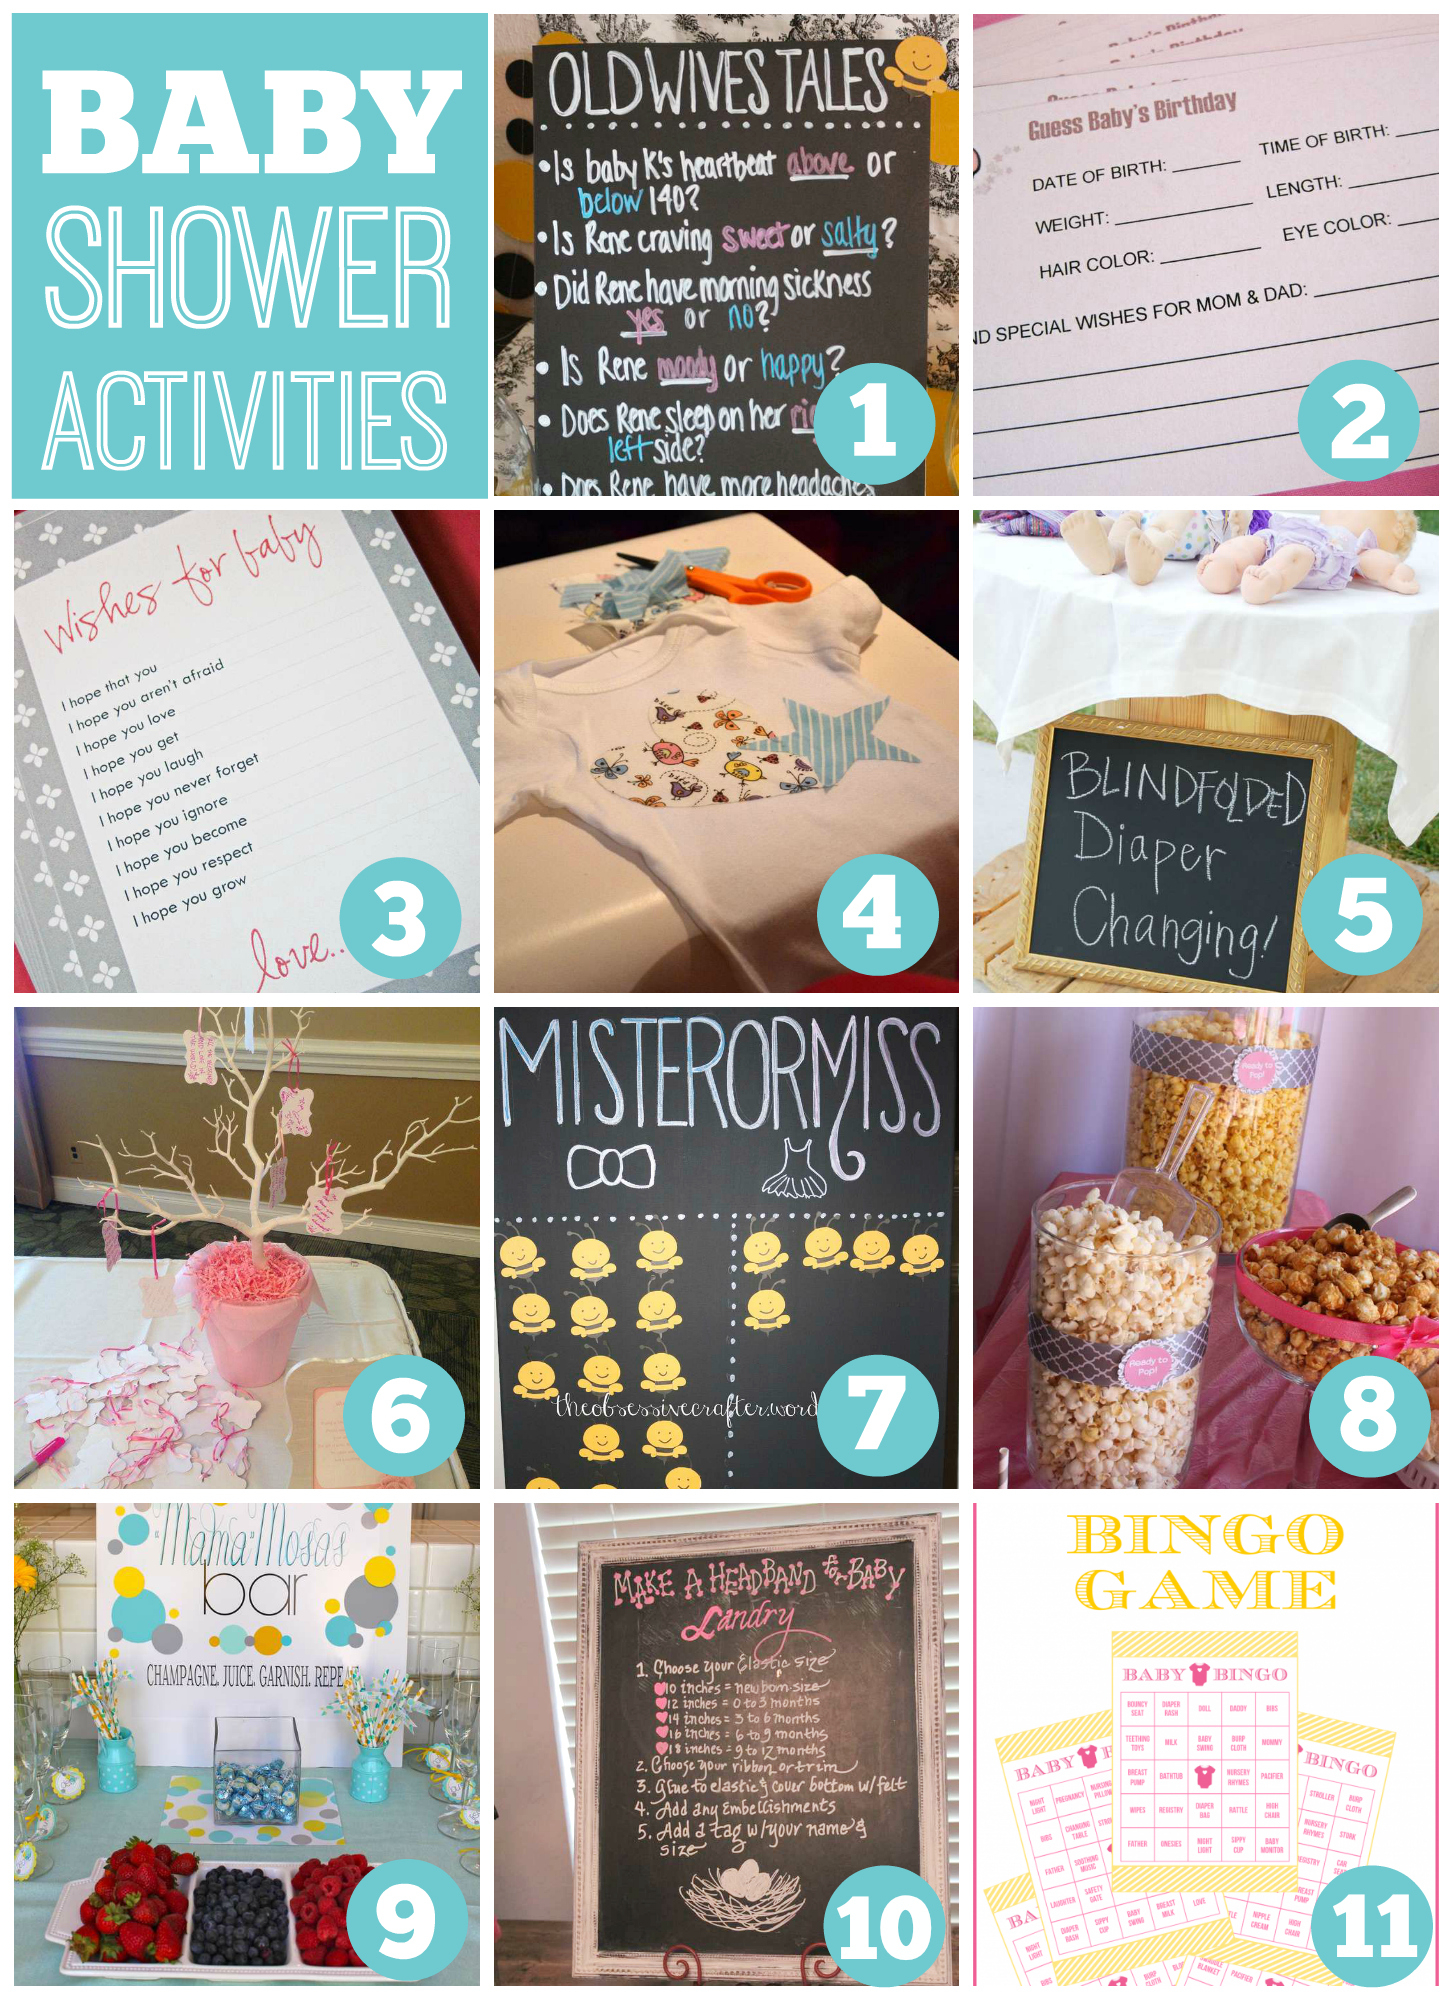 Cool Baby Shower Activities | Catch My Party in Baby Shower Activities